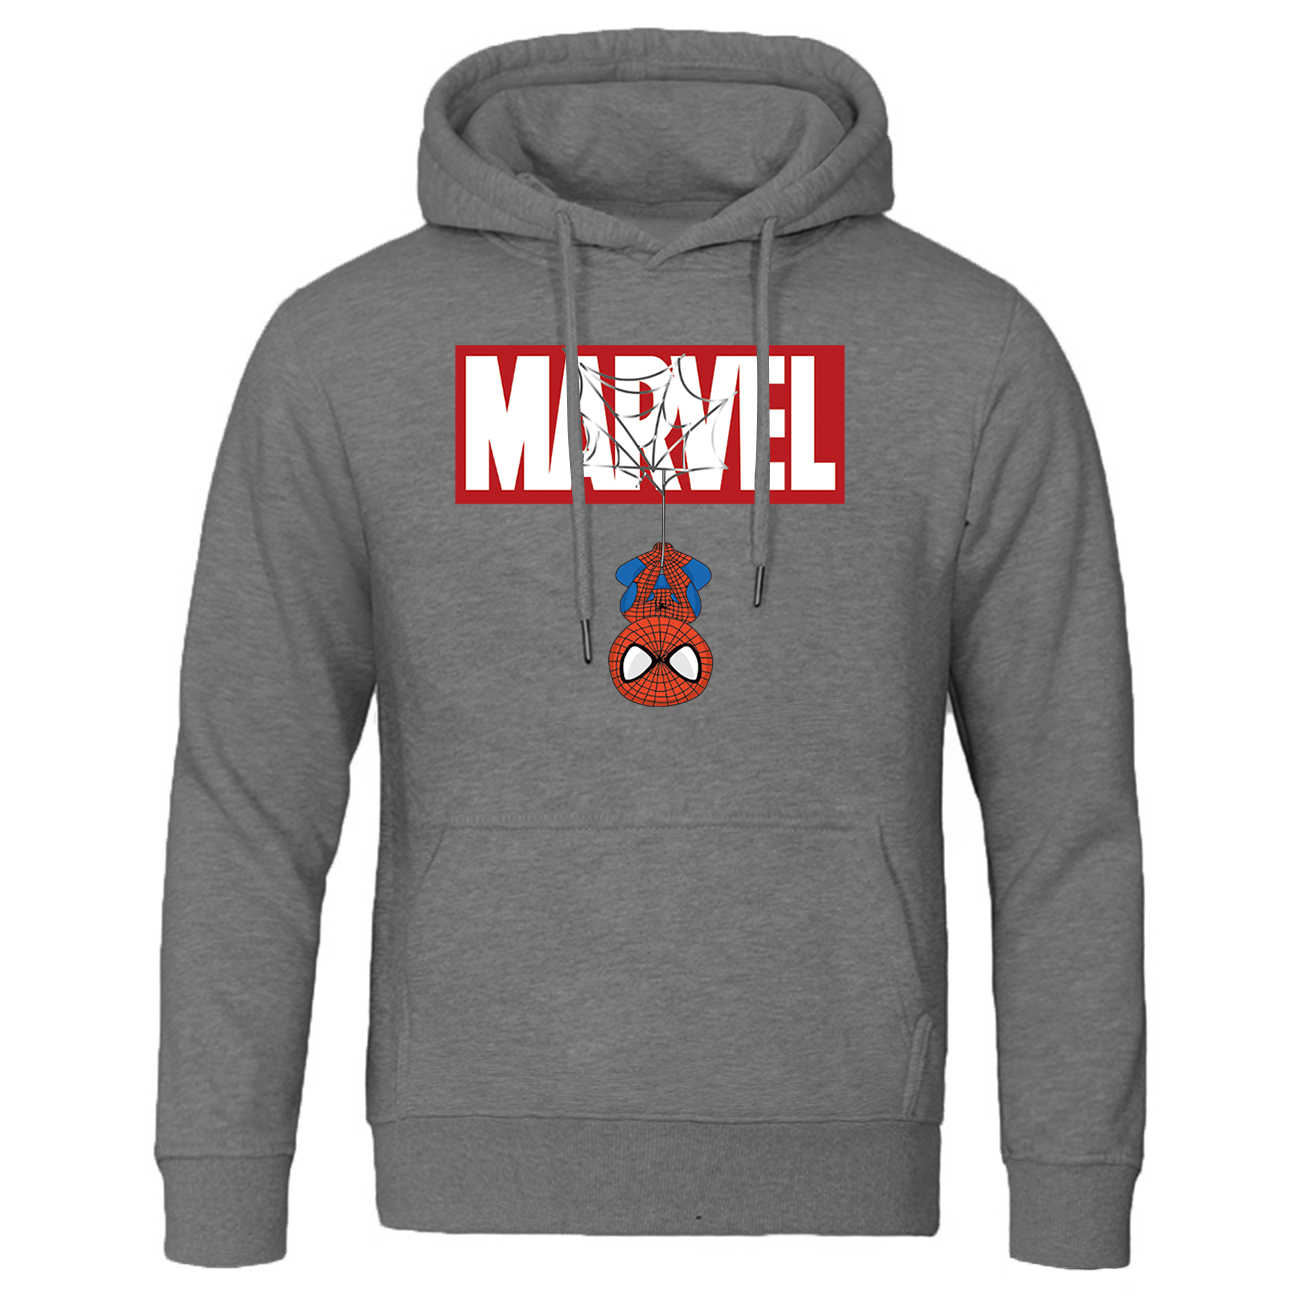 Men fashion marvel Spiderman printed jackets slim fit fleece coats sweatshirts spring autumn  casual trend man tracksuit clothes